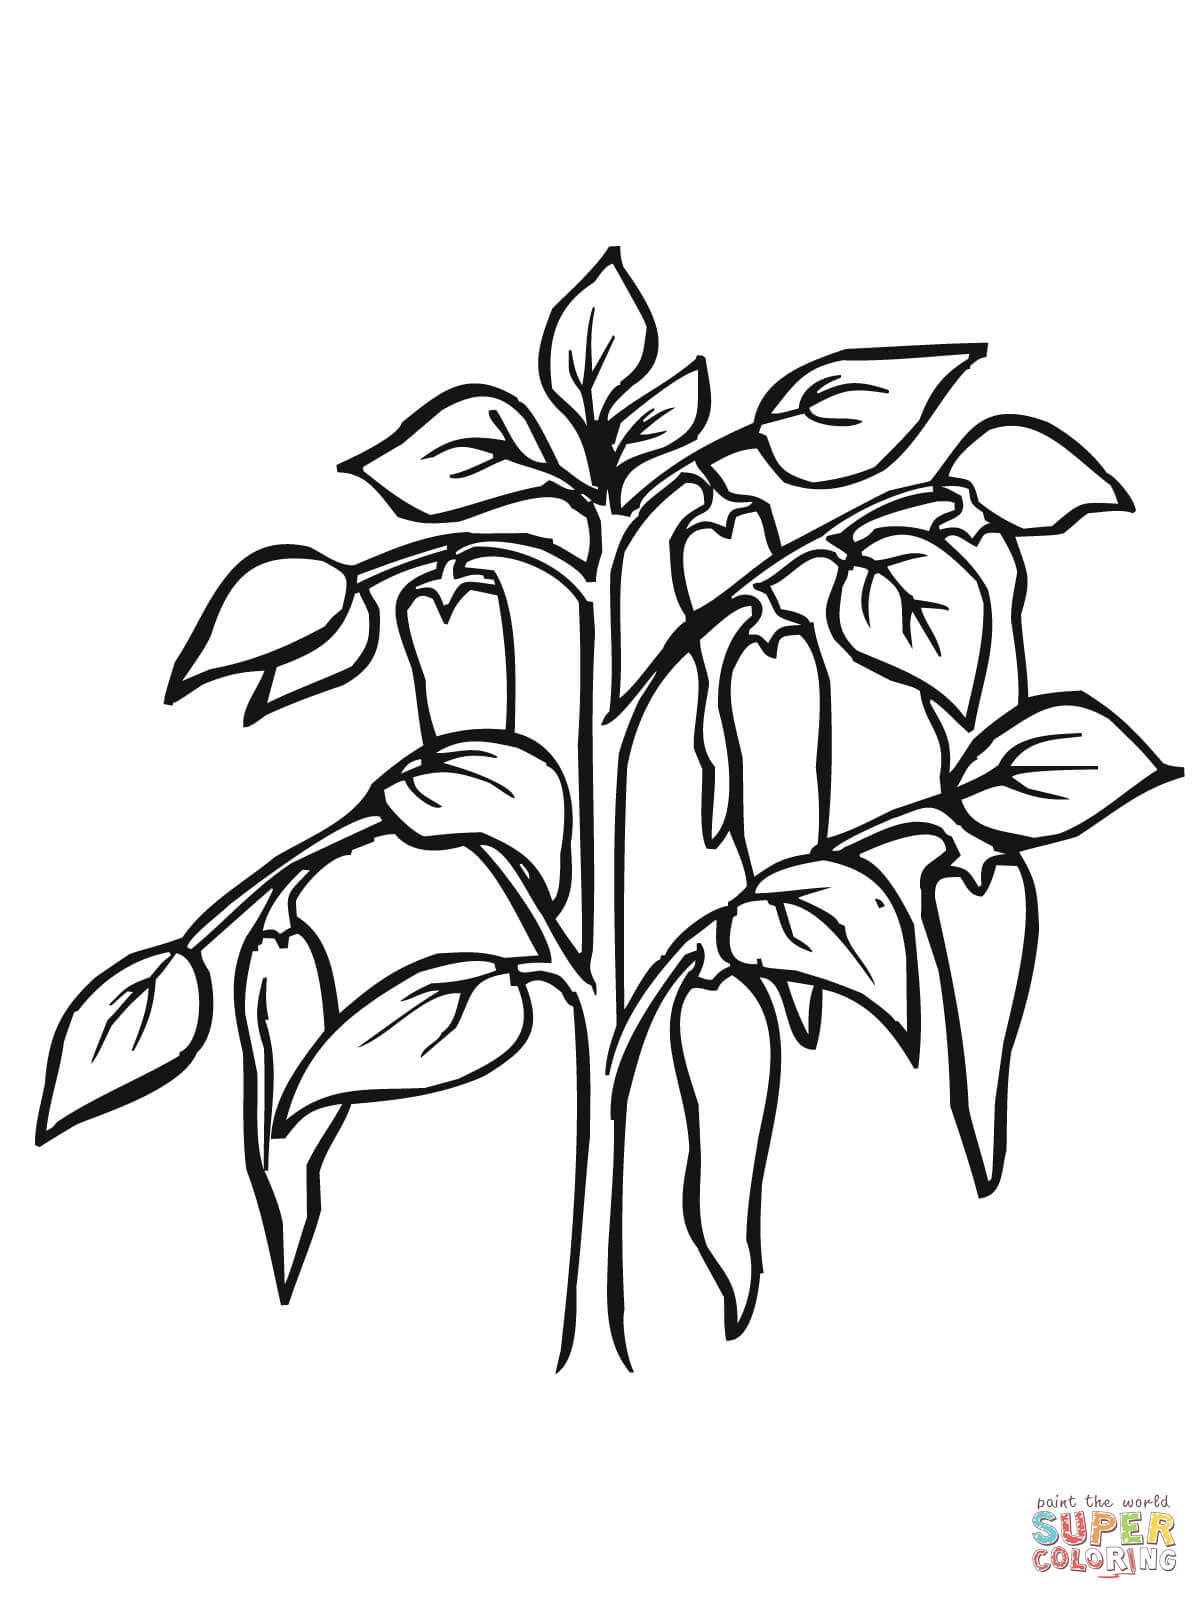 1200x1600 Chili Pepper Plant Coloring Page Free Printable Coloring Pages